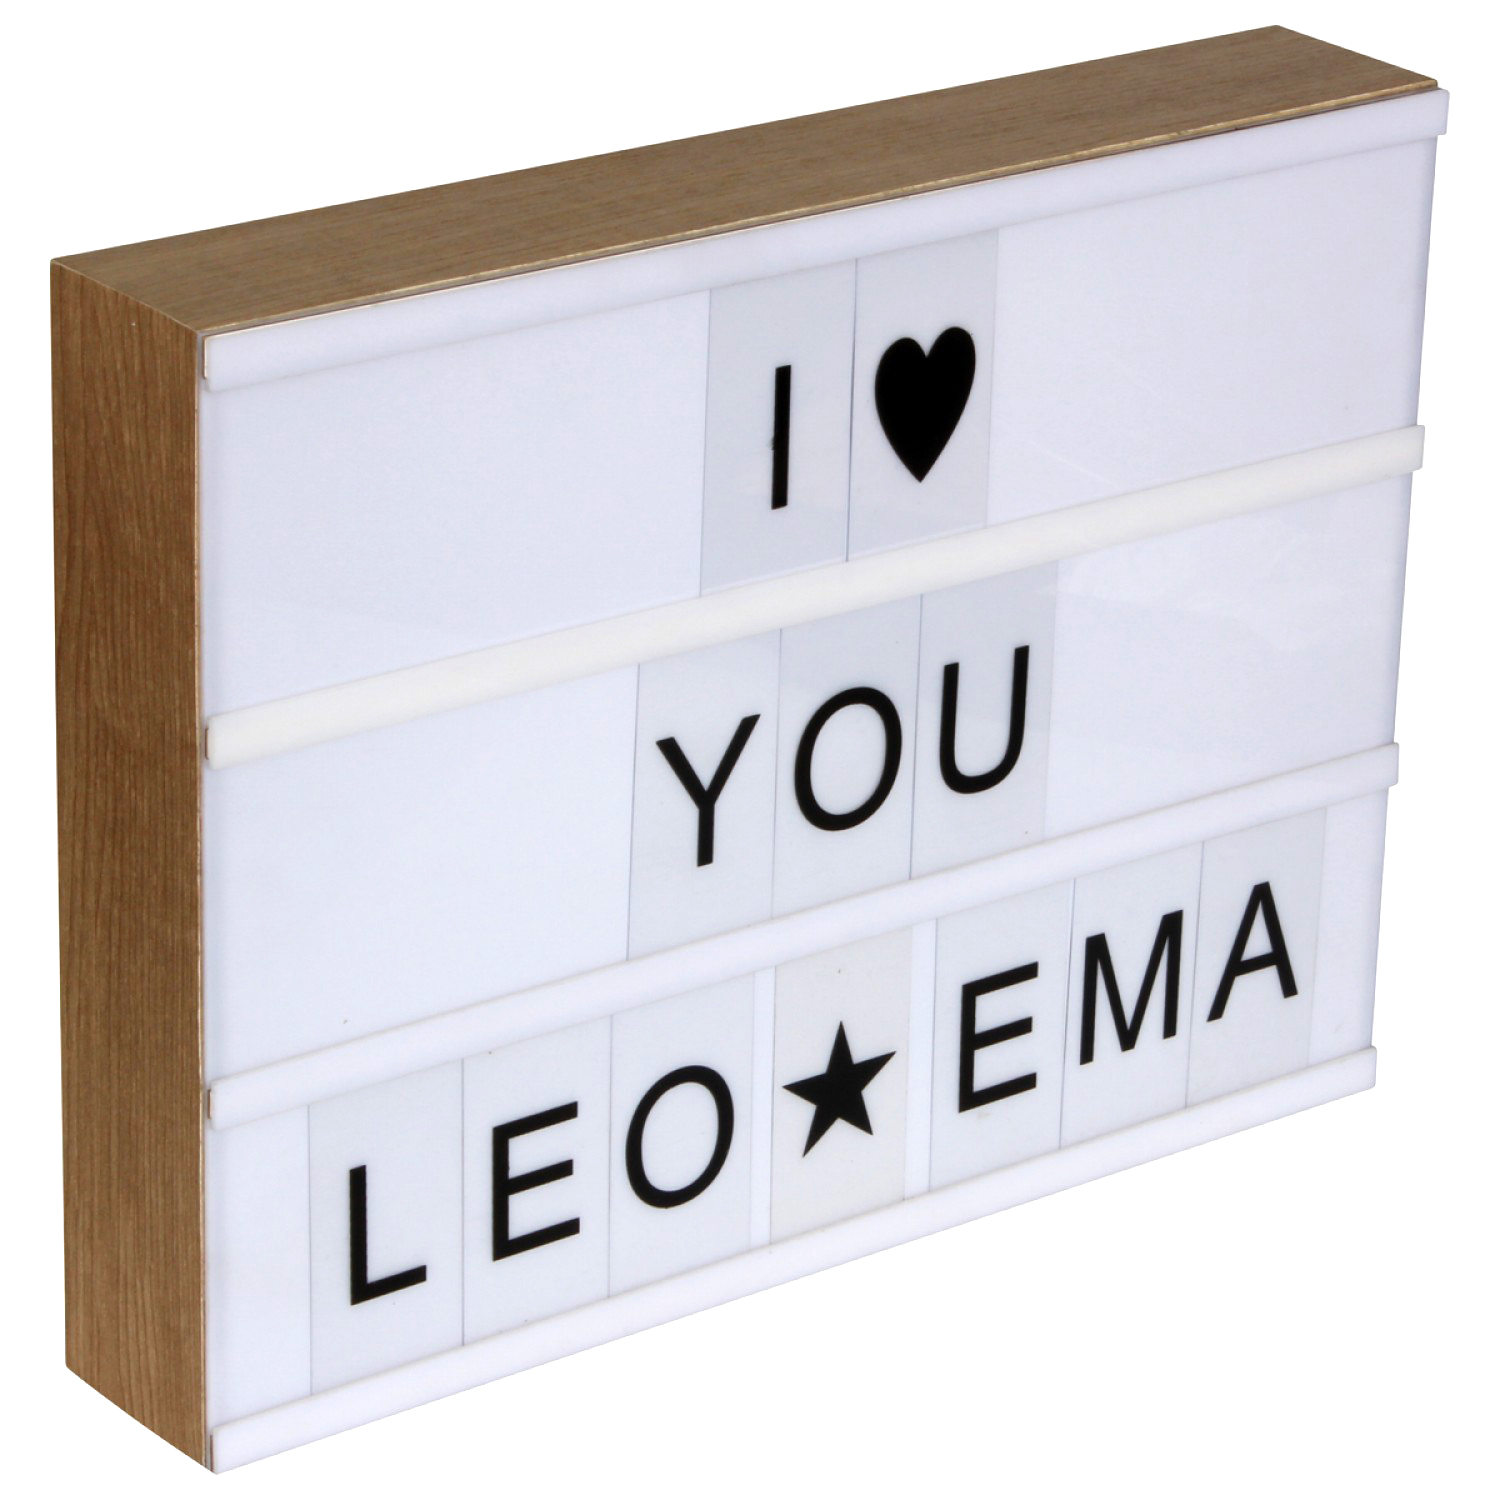 lightbox led leuchtkasten holz mit 95 buchstaben kramsen. Black Bedroom Furniture Sets. Home Design Ideas